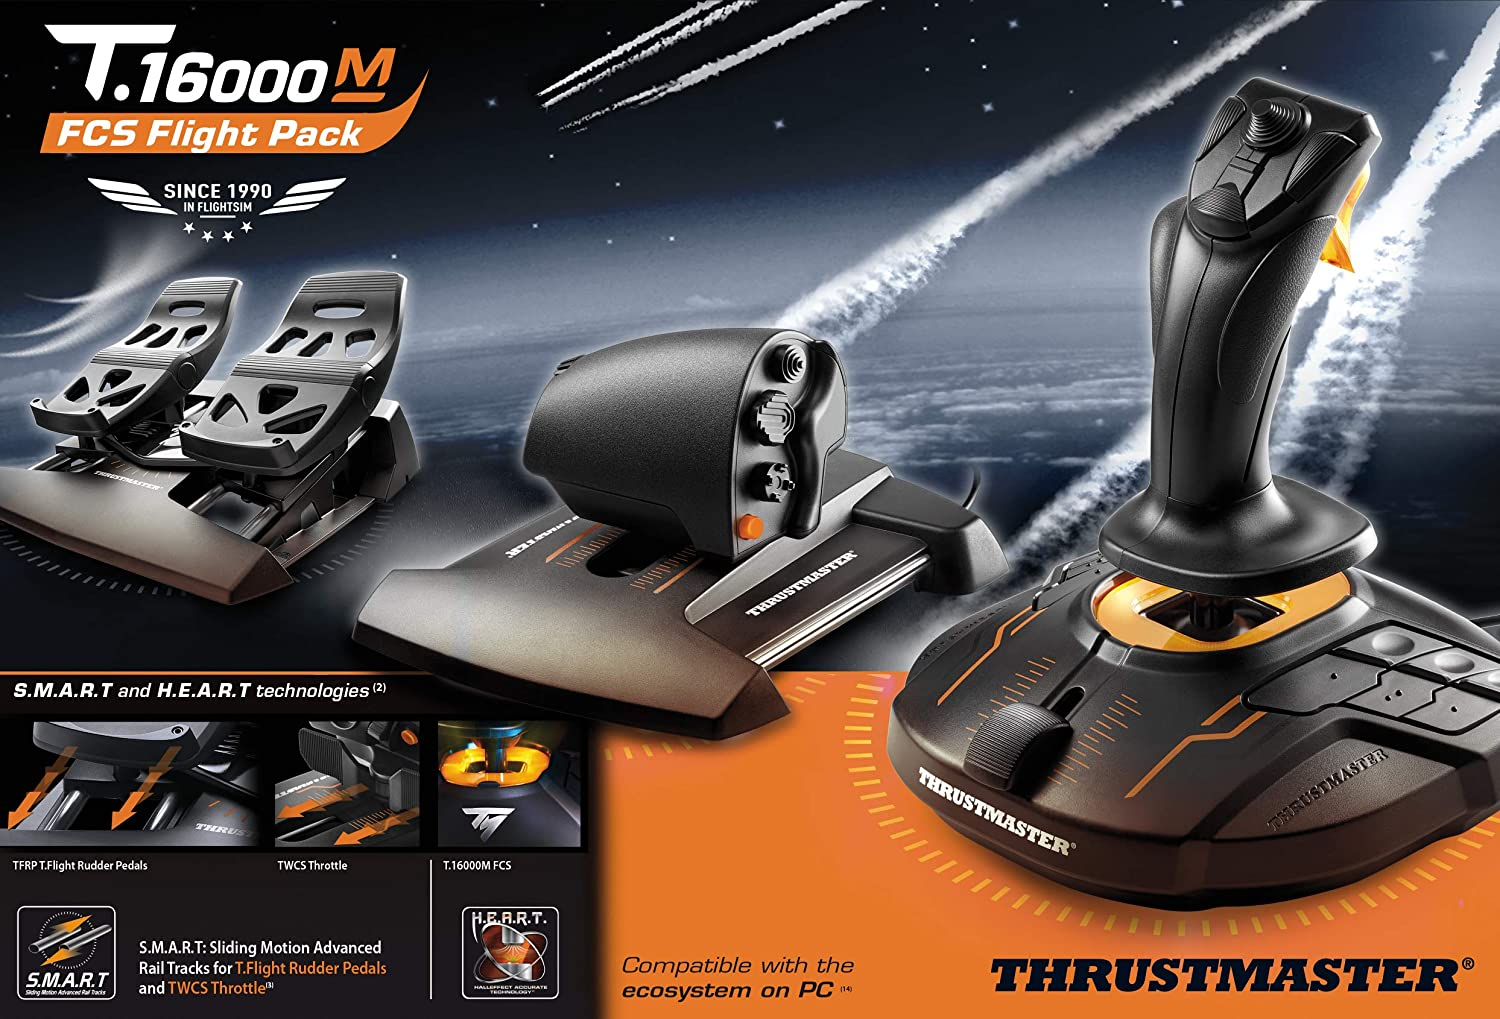 Thrustmaster T.16000M FCS FLIGHT PACK - Joystick - PC: Thrustmaster: Amazon.es: Electrónica